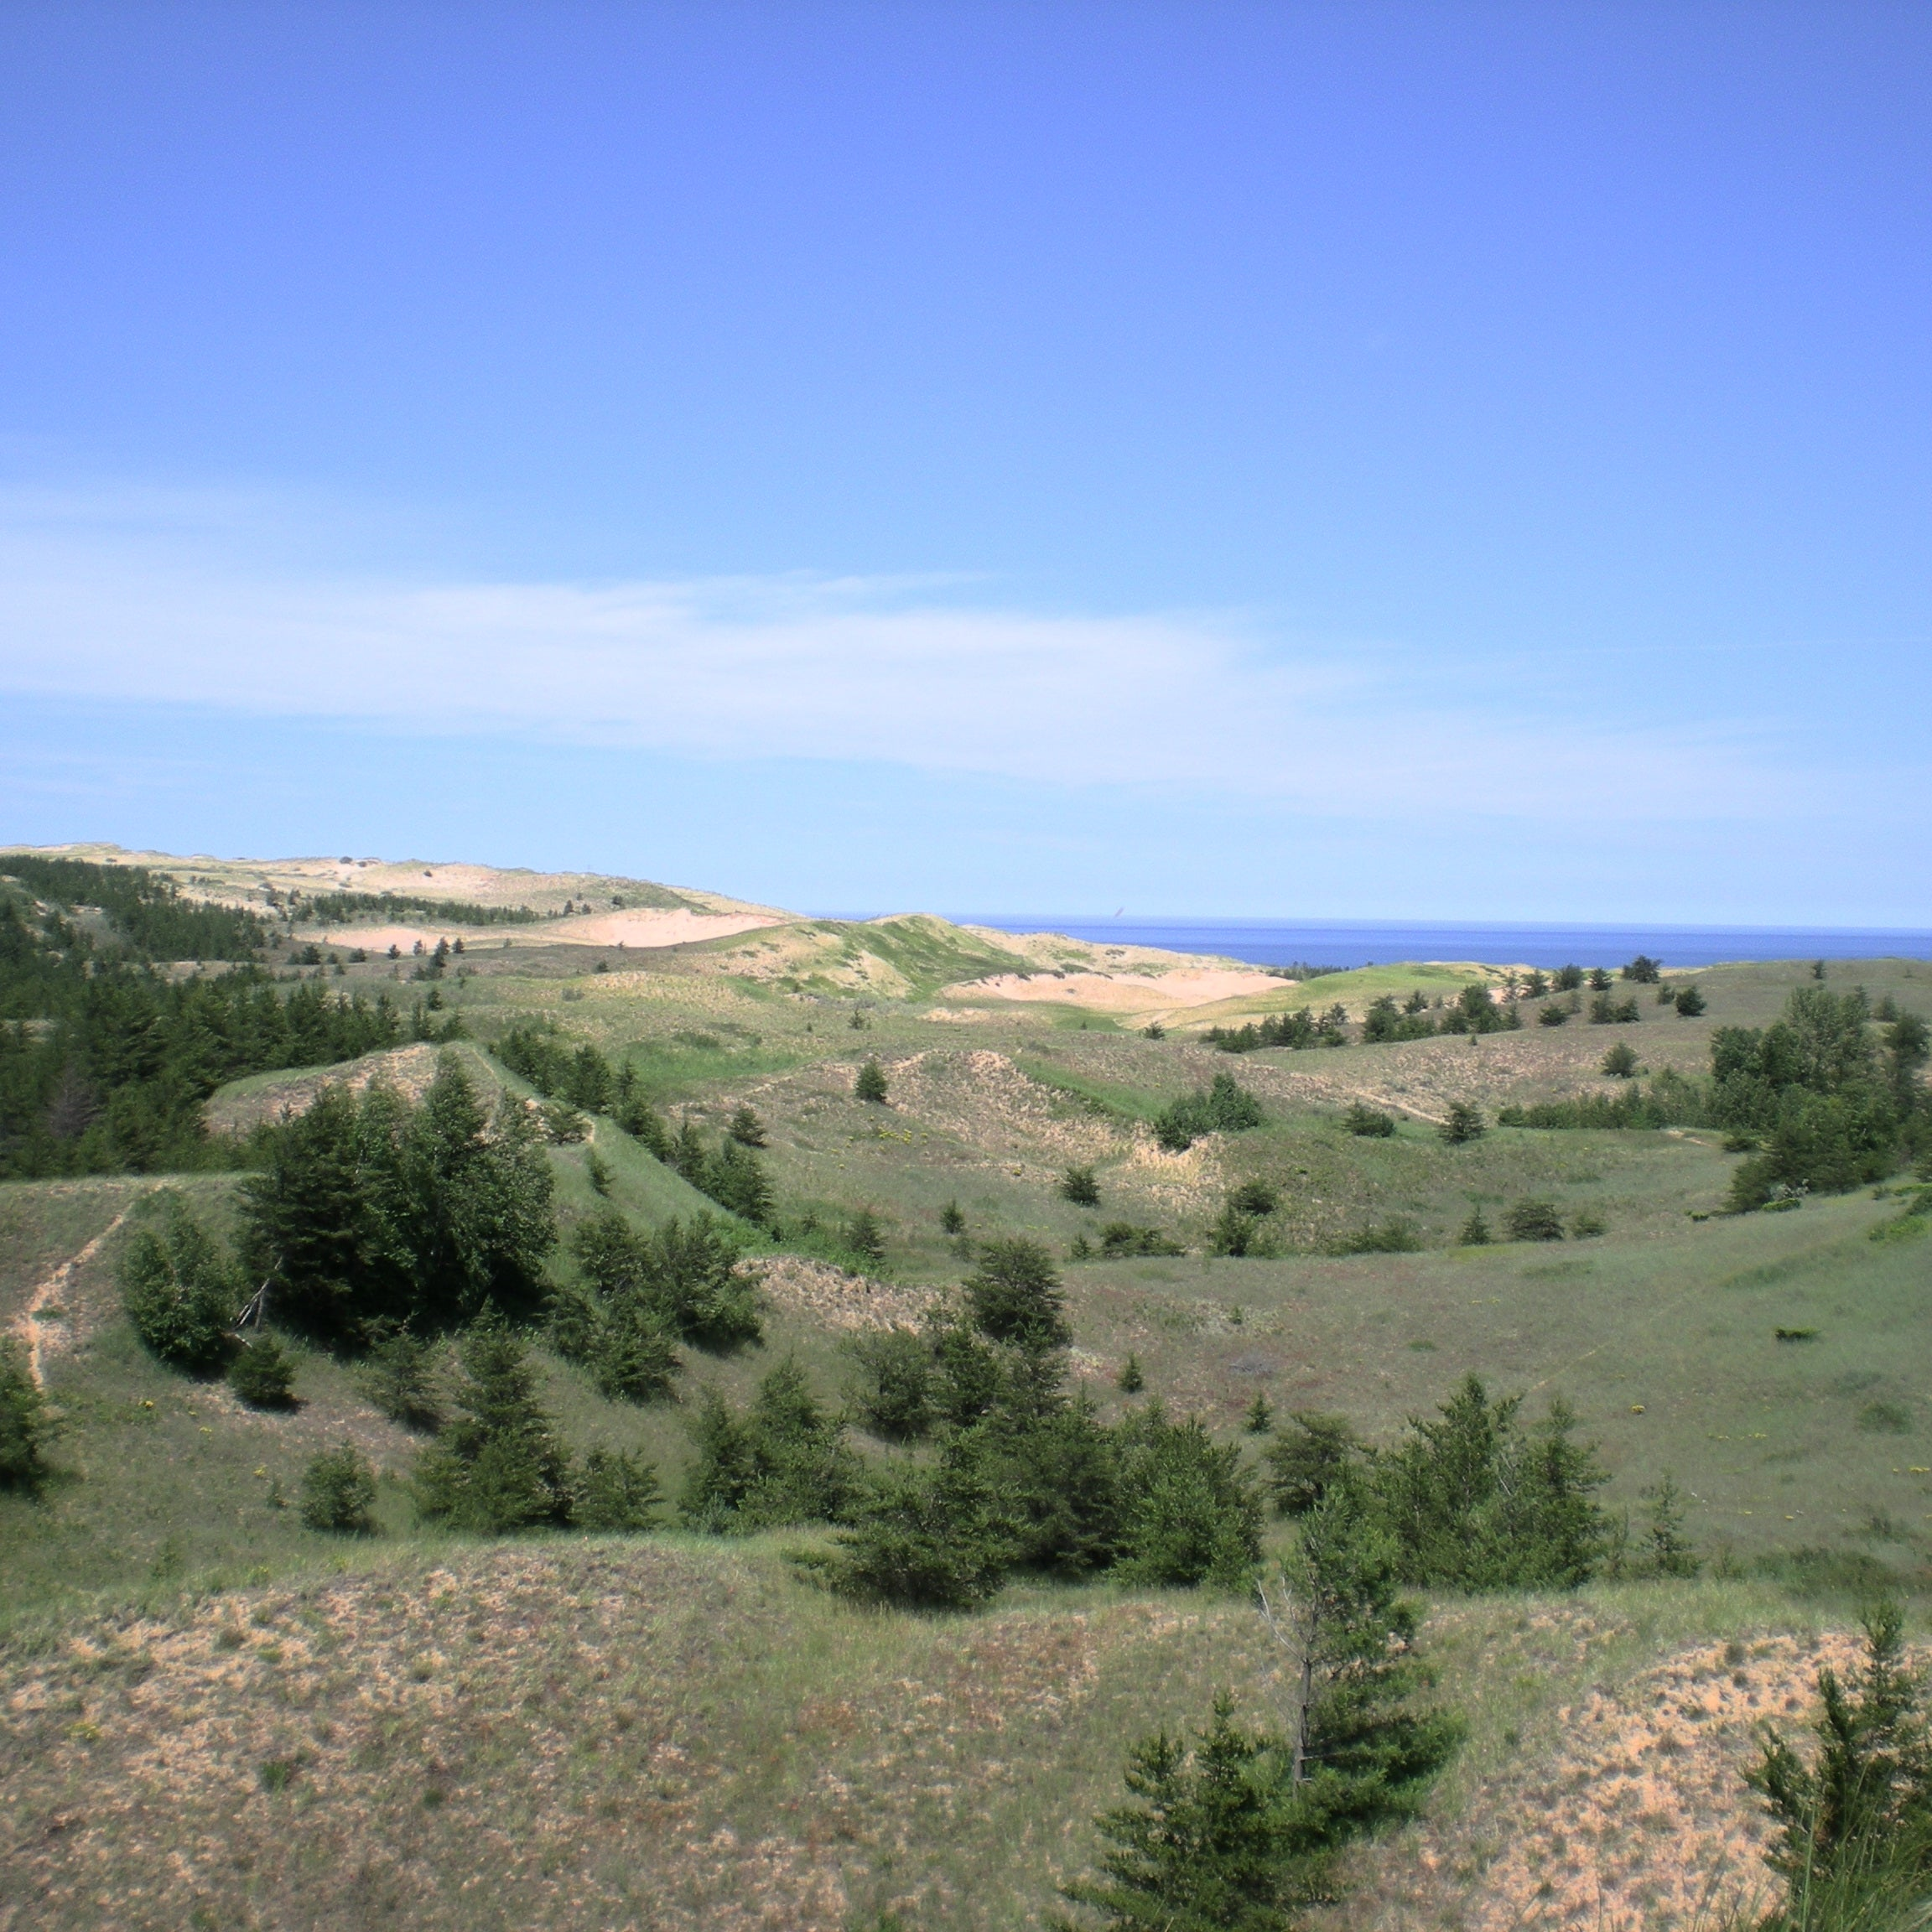 Looking at Lake Superior across the Grand Sable Dunes in Pictured Rocks National Lakeshore